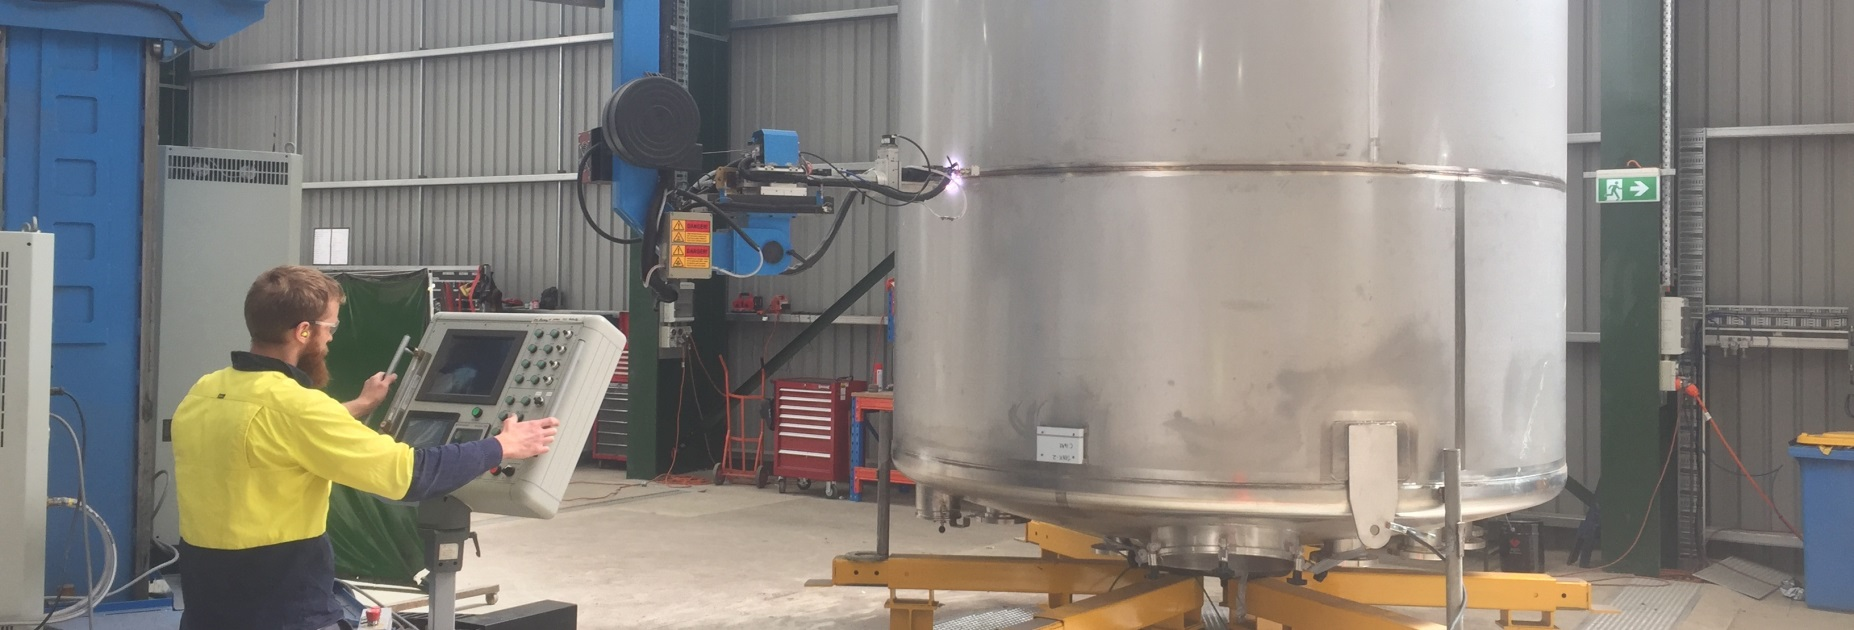 engineering, design, robotics, stainless steel tank, stainless steel pressure vessels